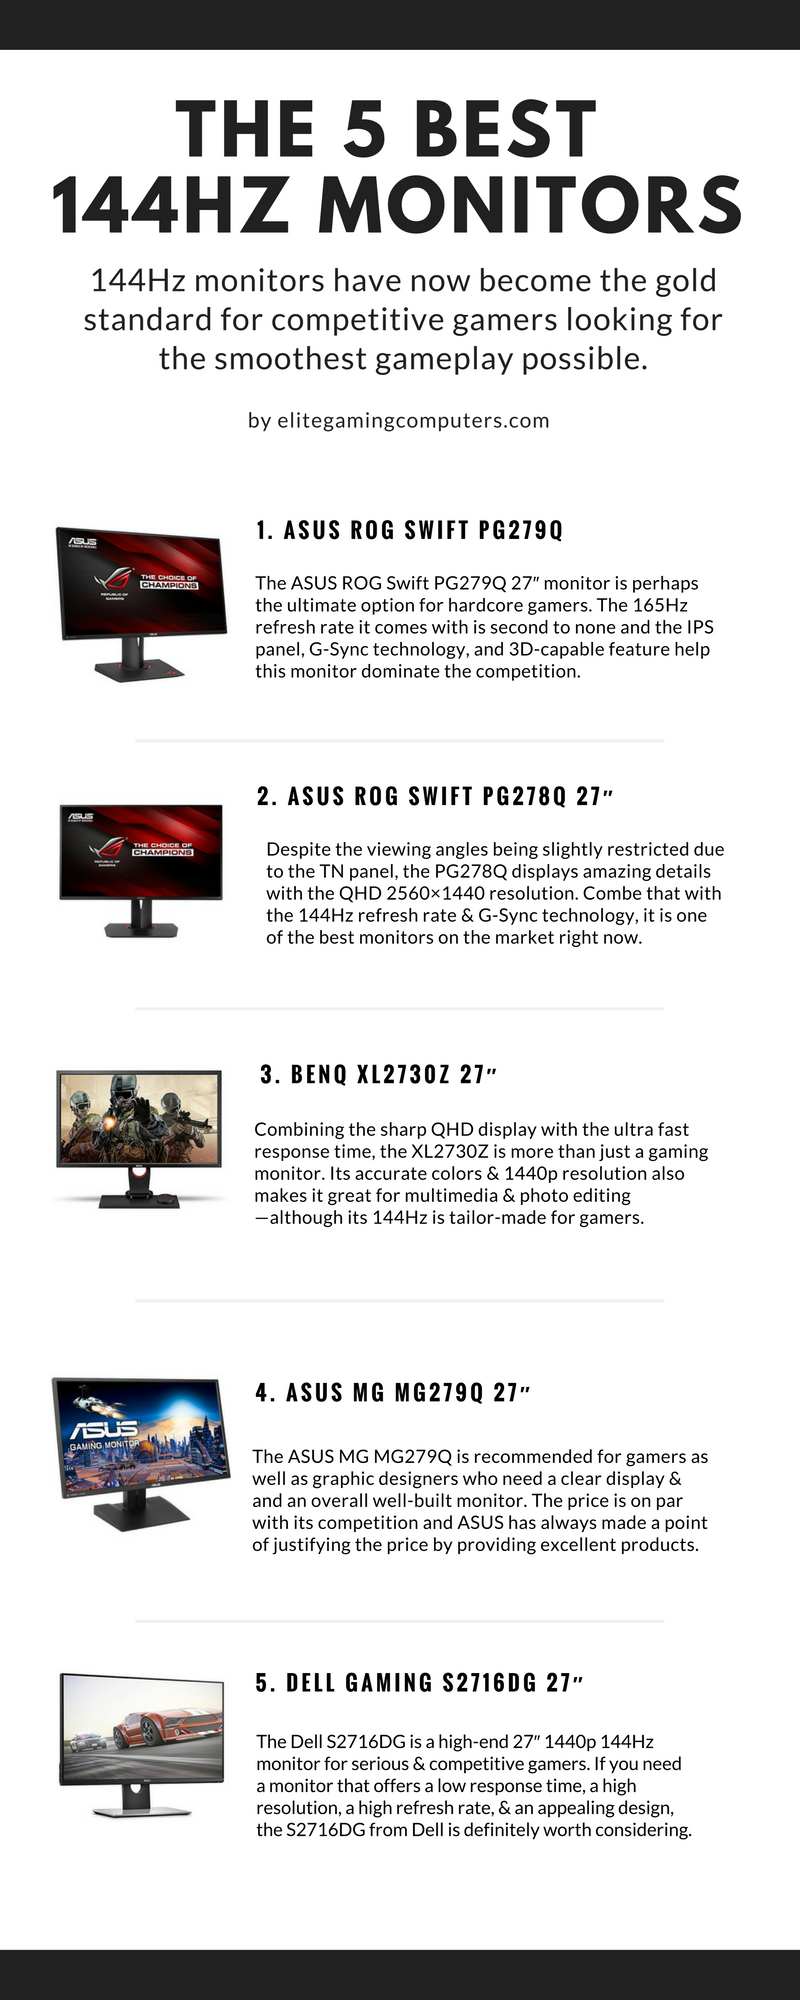 144Hz-Monitor-Infographic